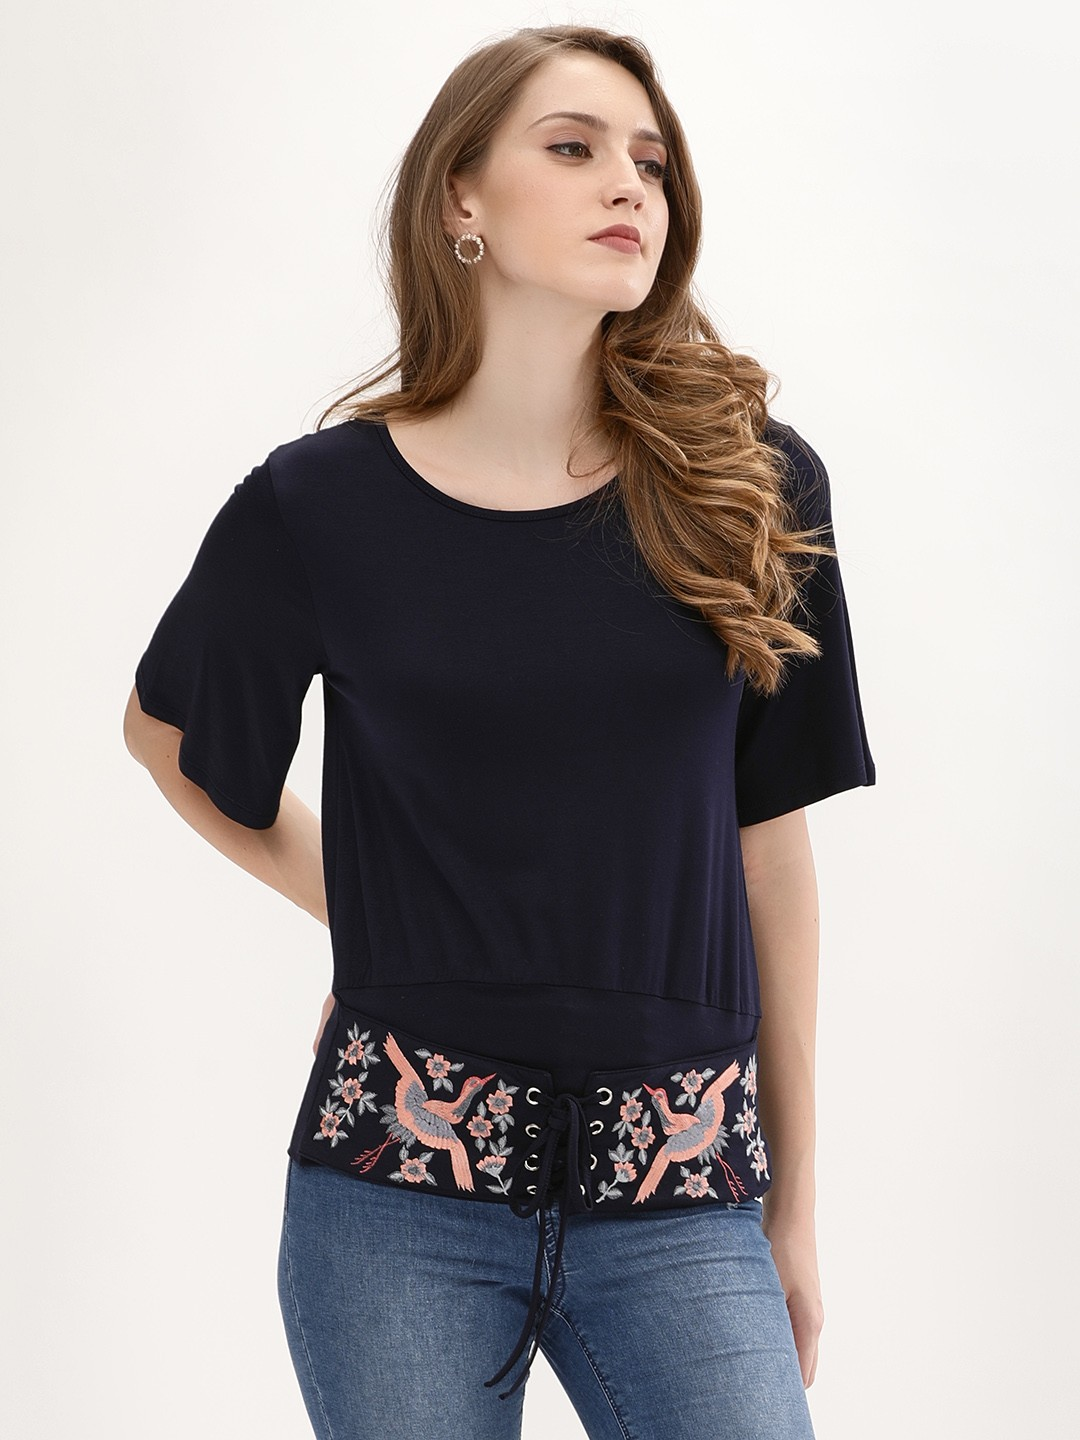 Origami Lily Navy Embroidered Corset Top 1